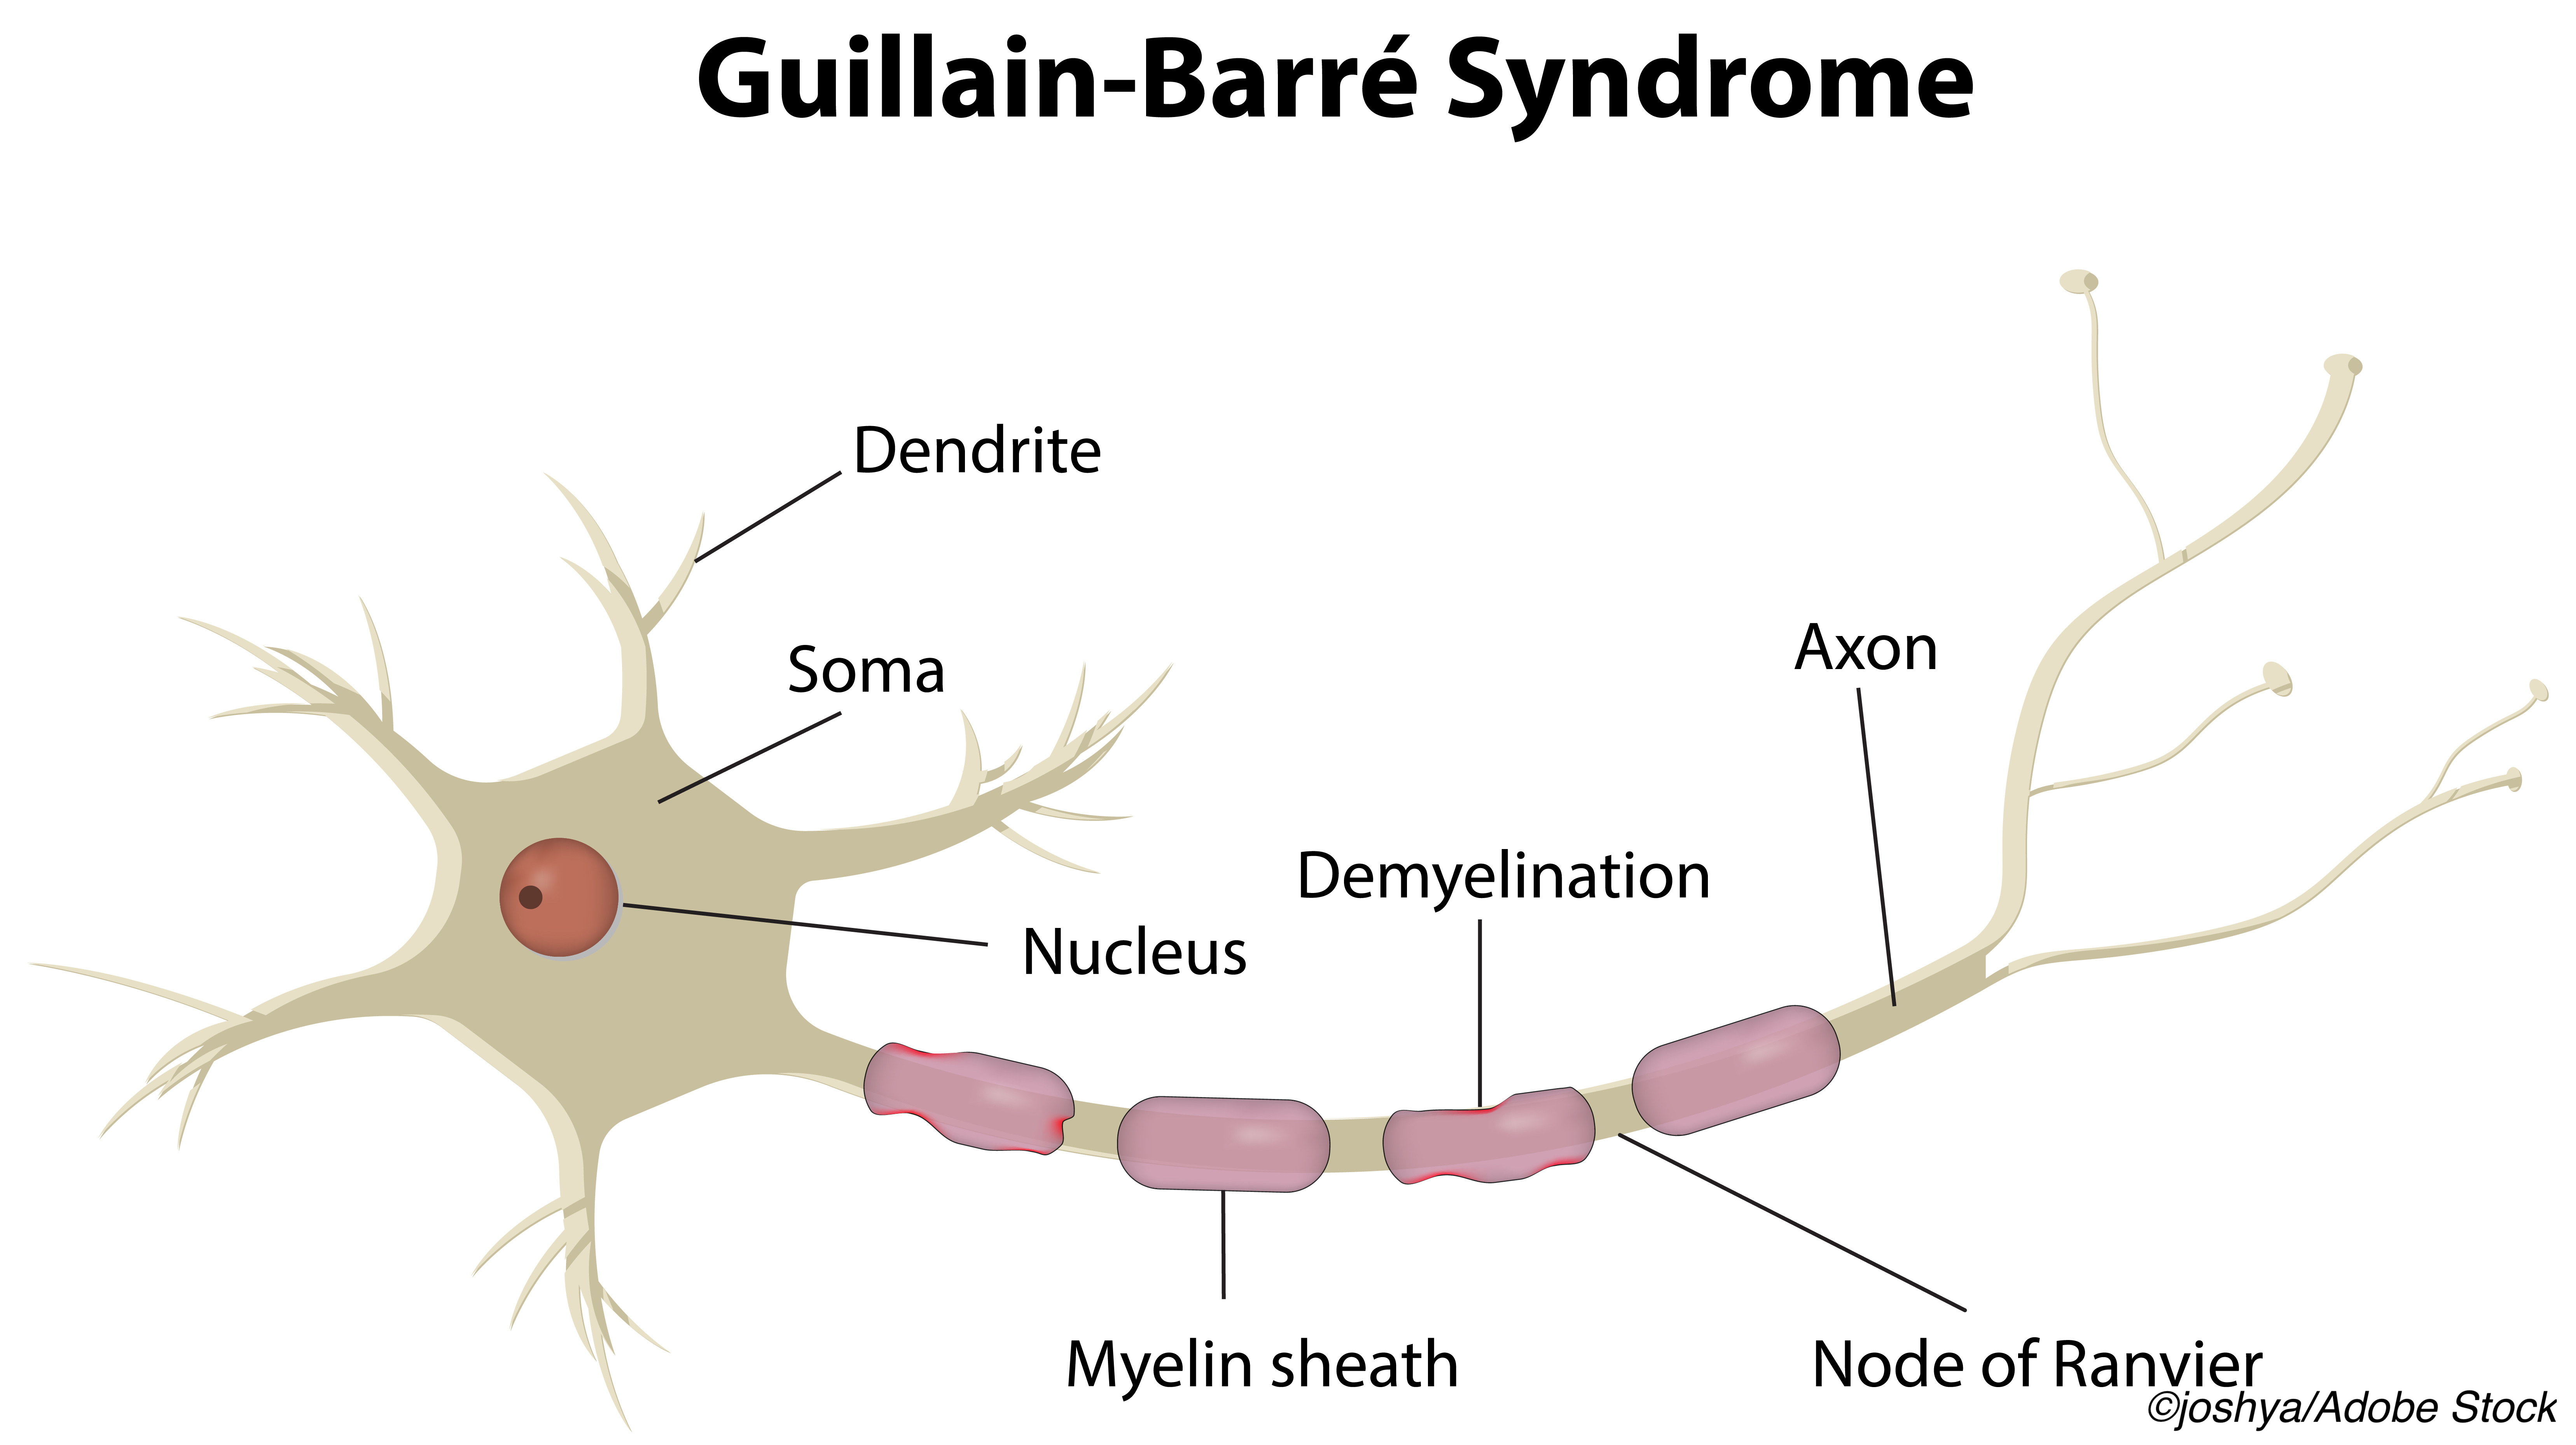 Guillain-Barré Case Reported After Covid-19 Vaccination